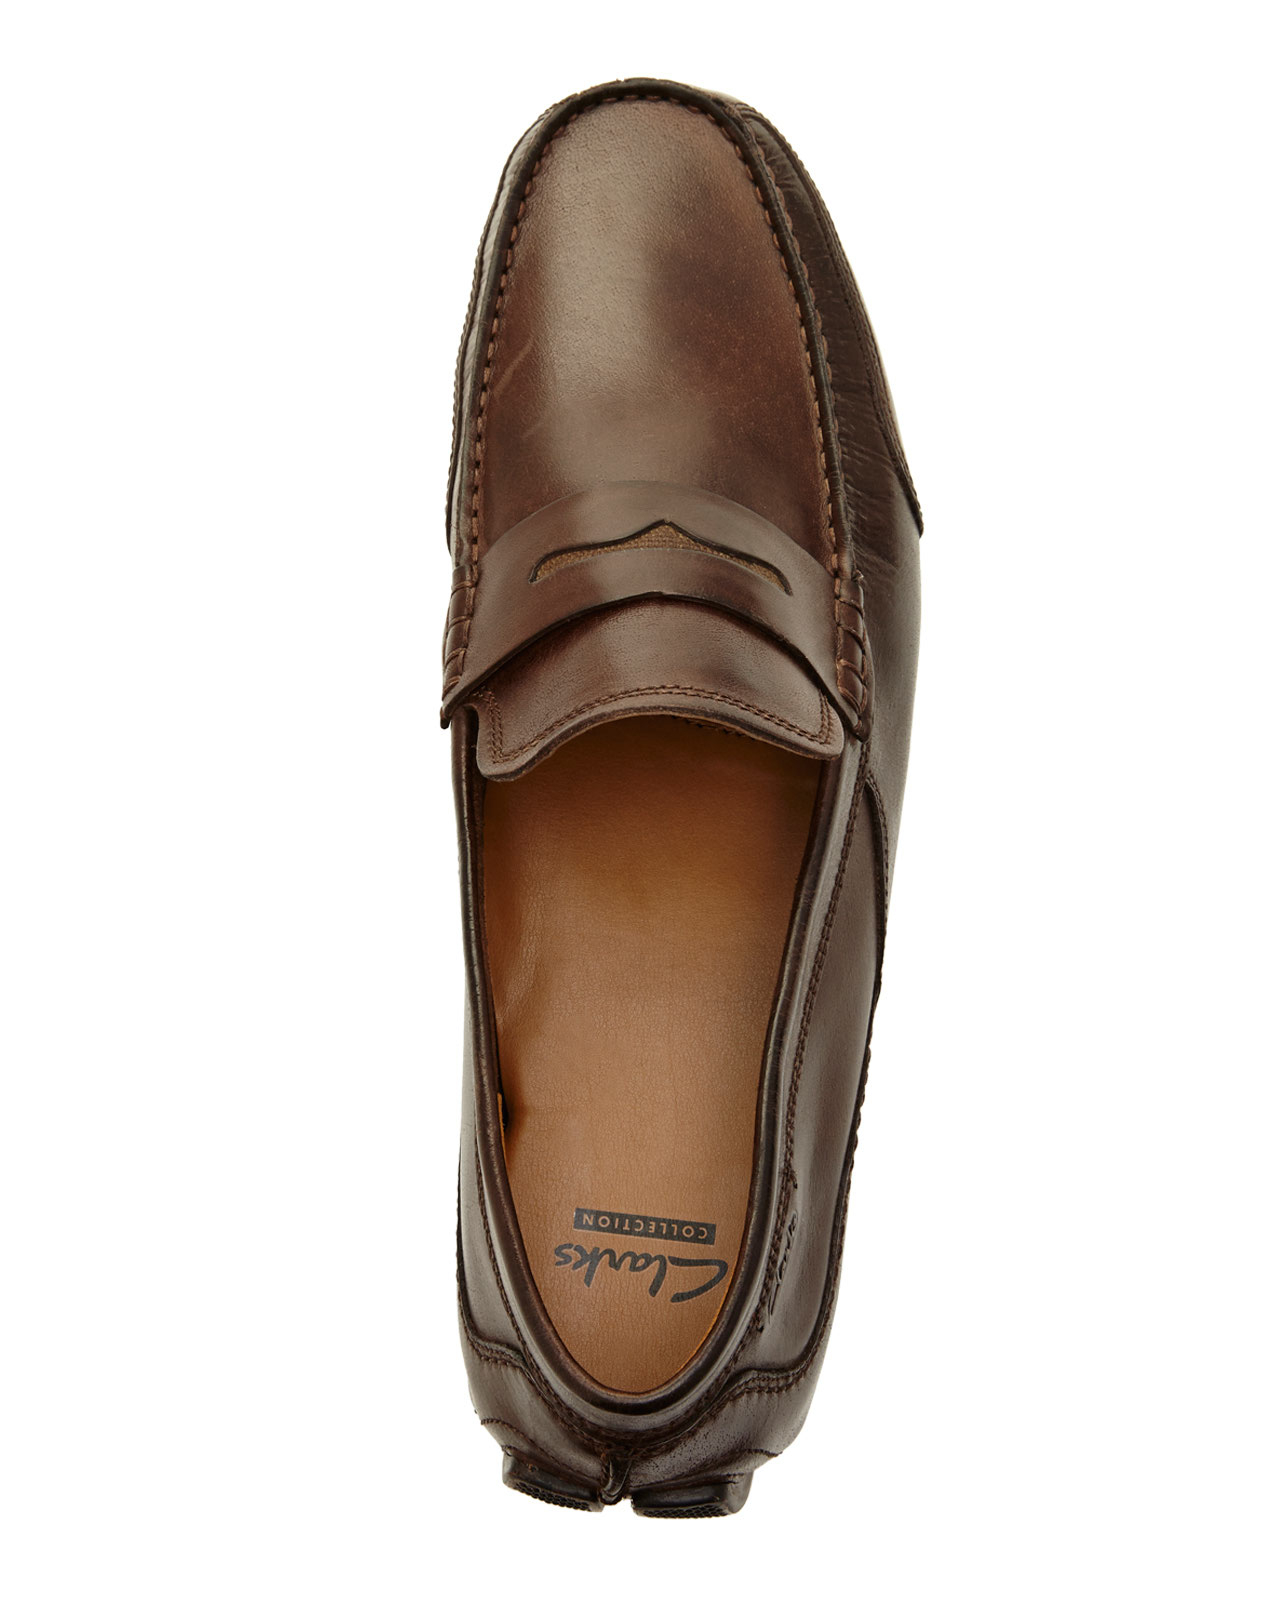 Clarks Brown Ashmont Way Penny Loafers In For Men Lyst